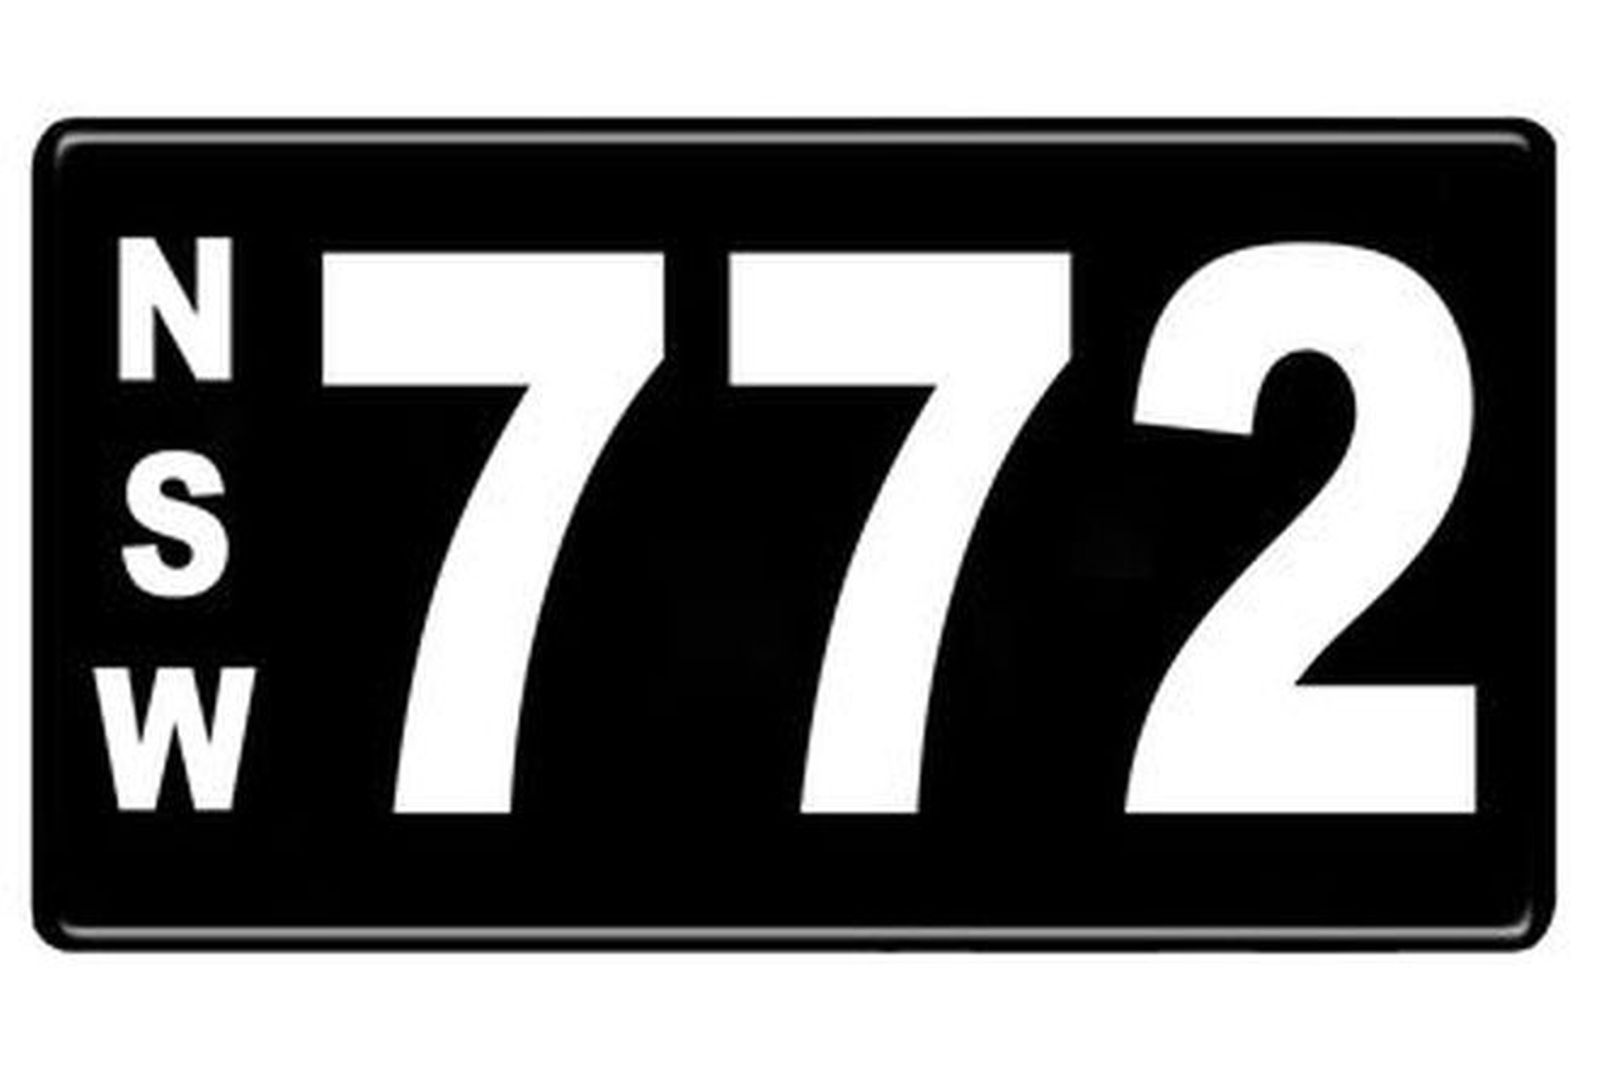 Number Plates - NSW Numerical Number Plates '772'